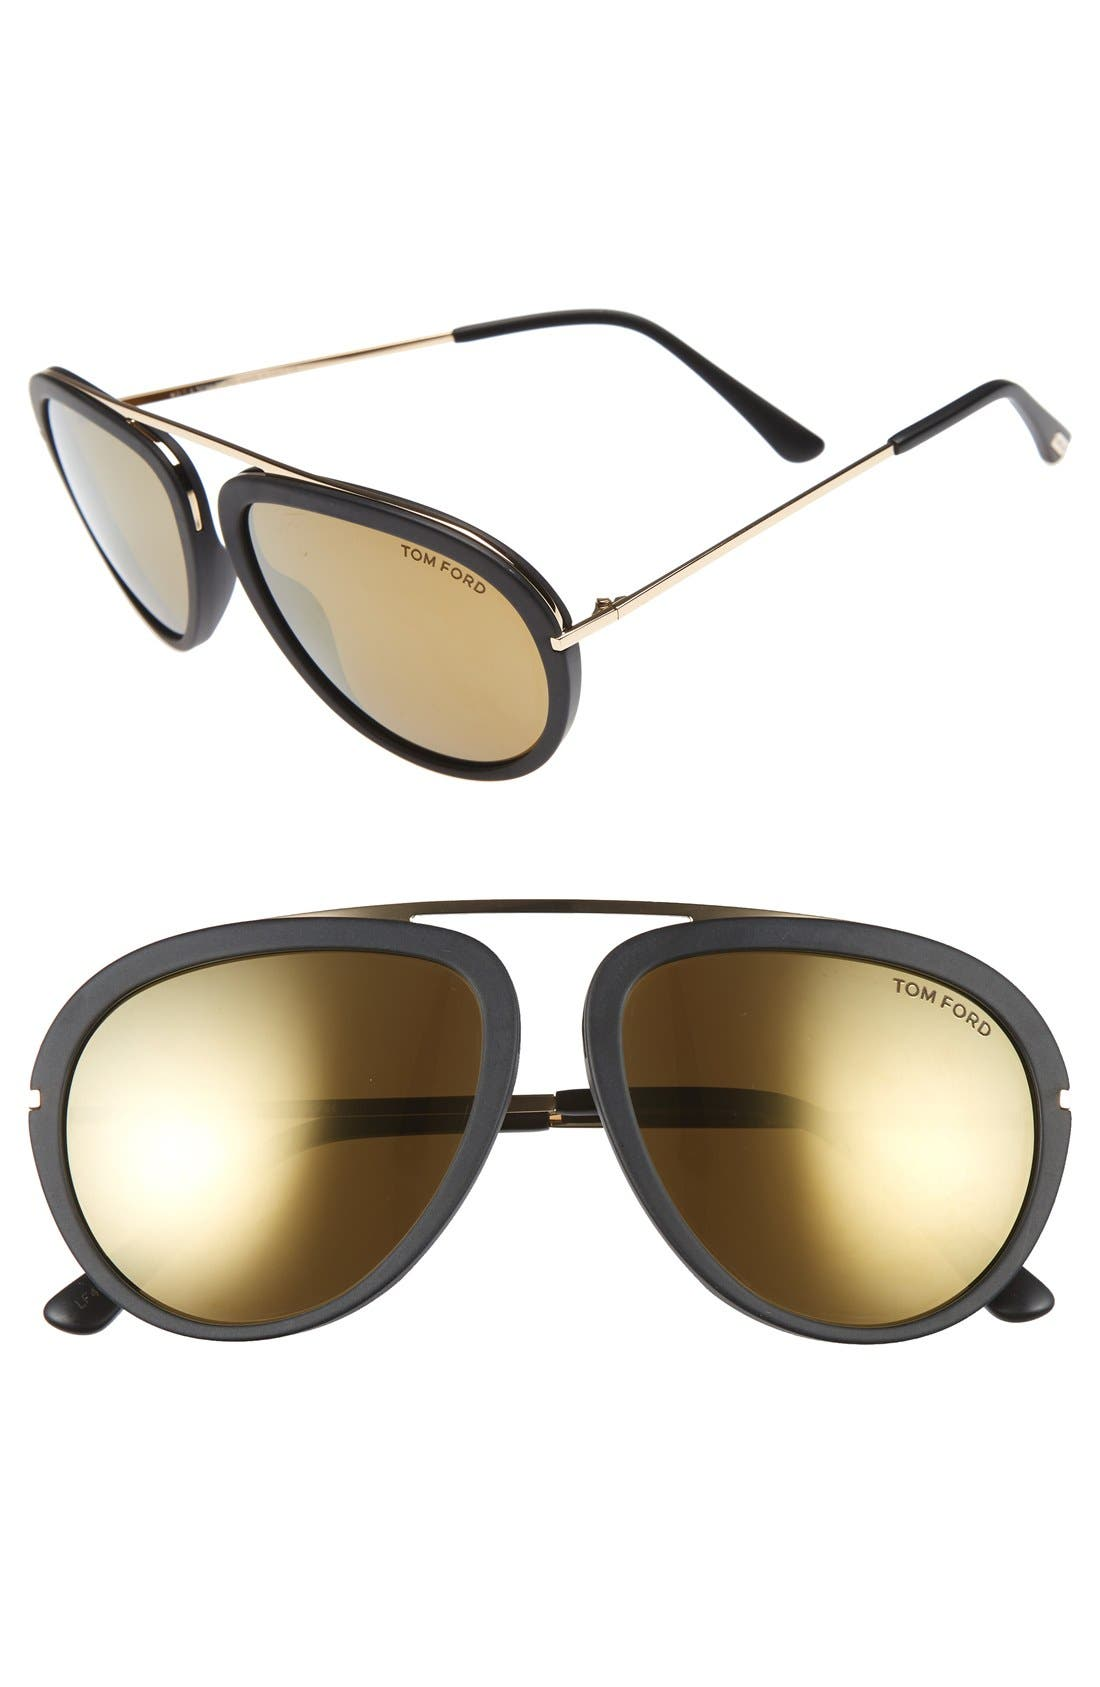 Alternate Image 1 Selected - Tom Ford 'Stacy' 57mm Sunglasses